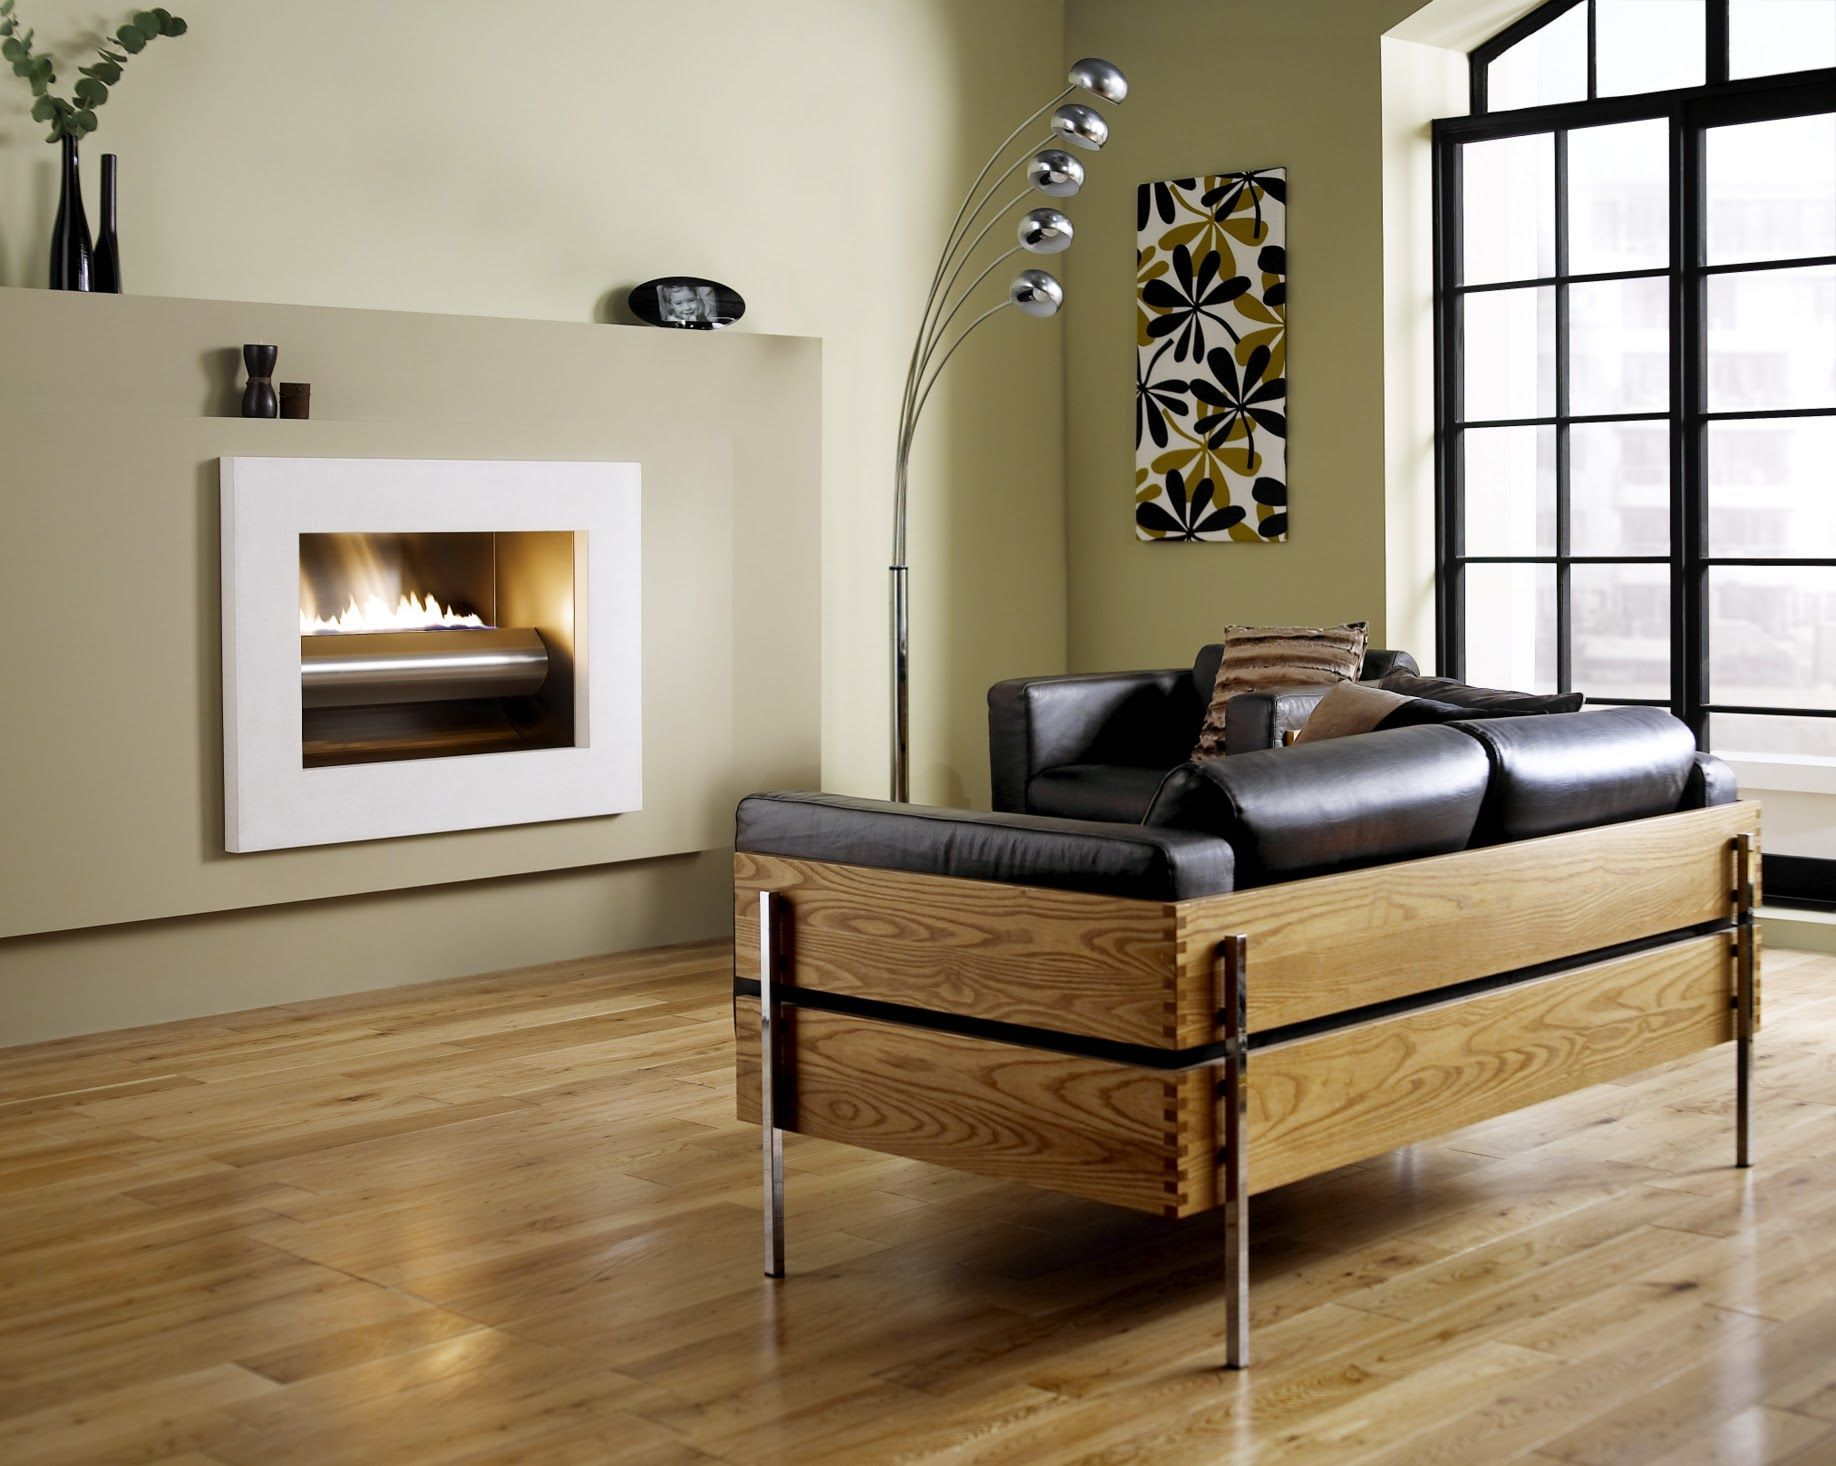 Modern hole in the wall style fireplace fireplace trends modern